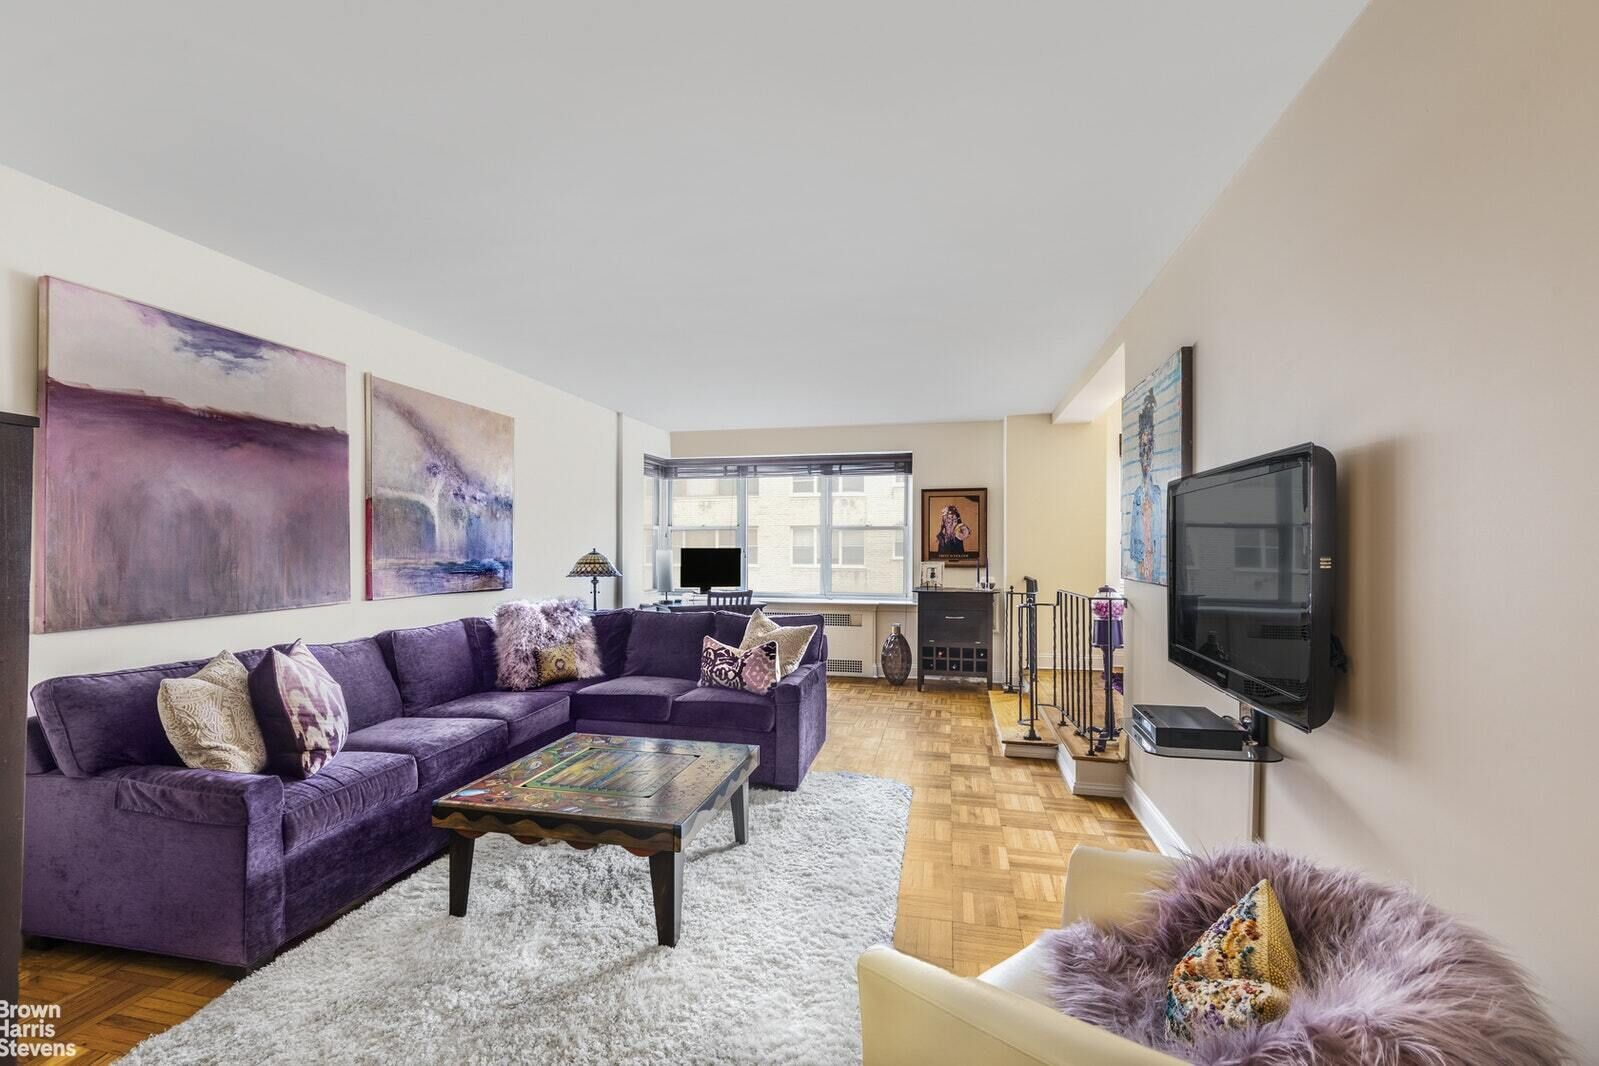 Apartment for sale at 215 East 79th Street, Apt 11F